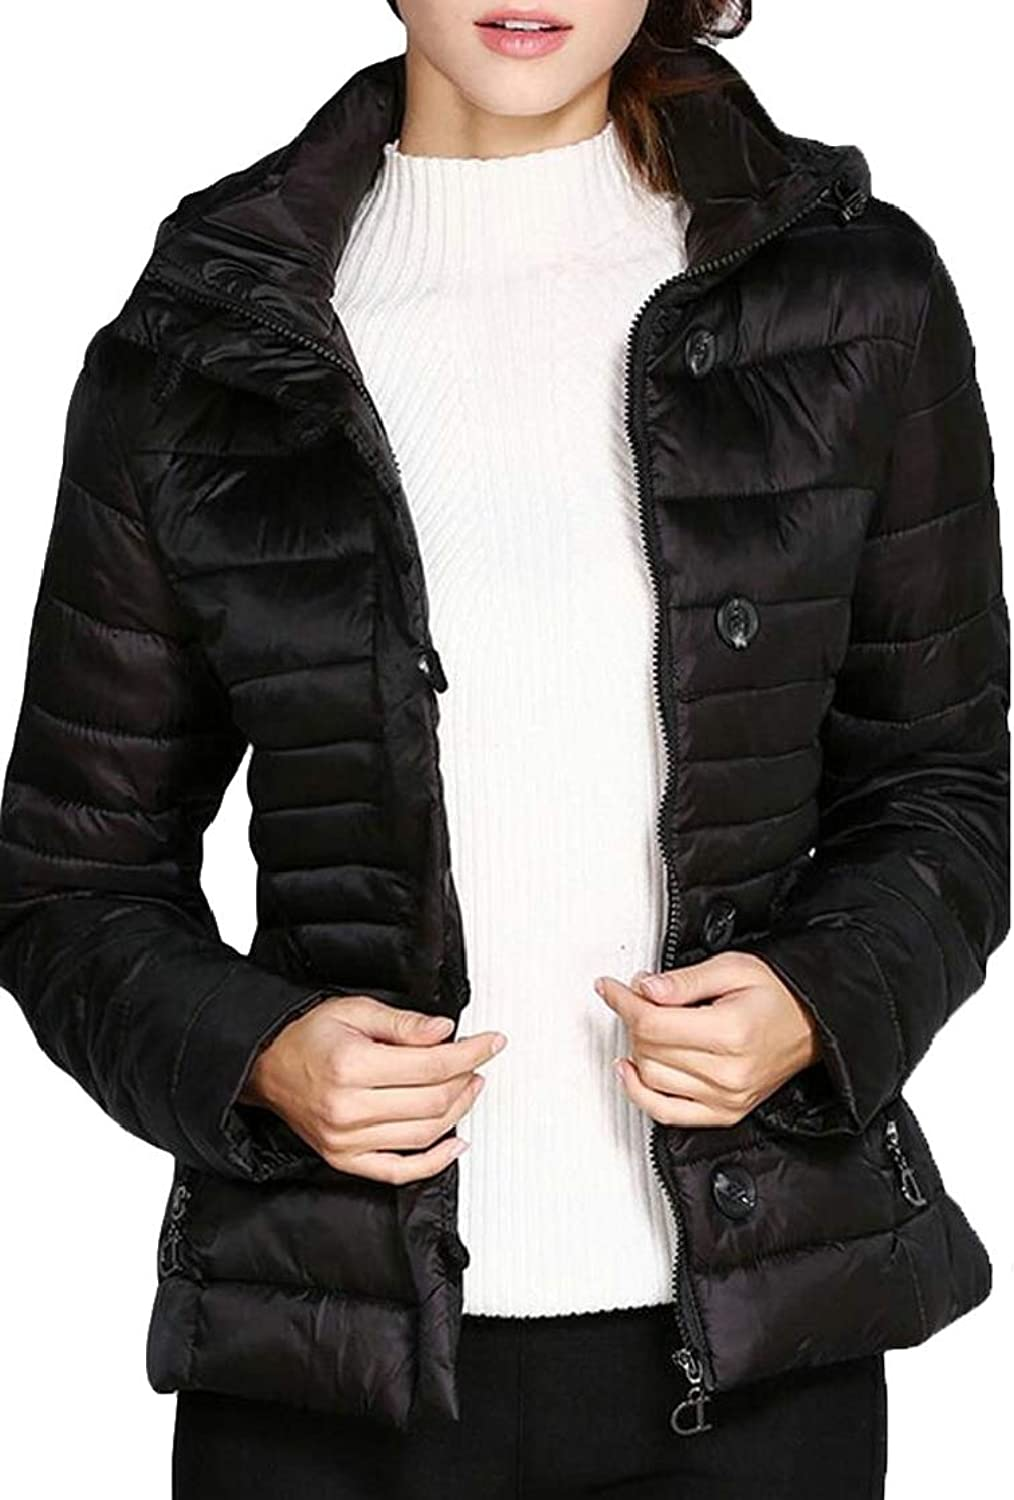 Esast Women Winter Warm Zipper Hooded Down Jacket Quilted Padded Short Coats